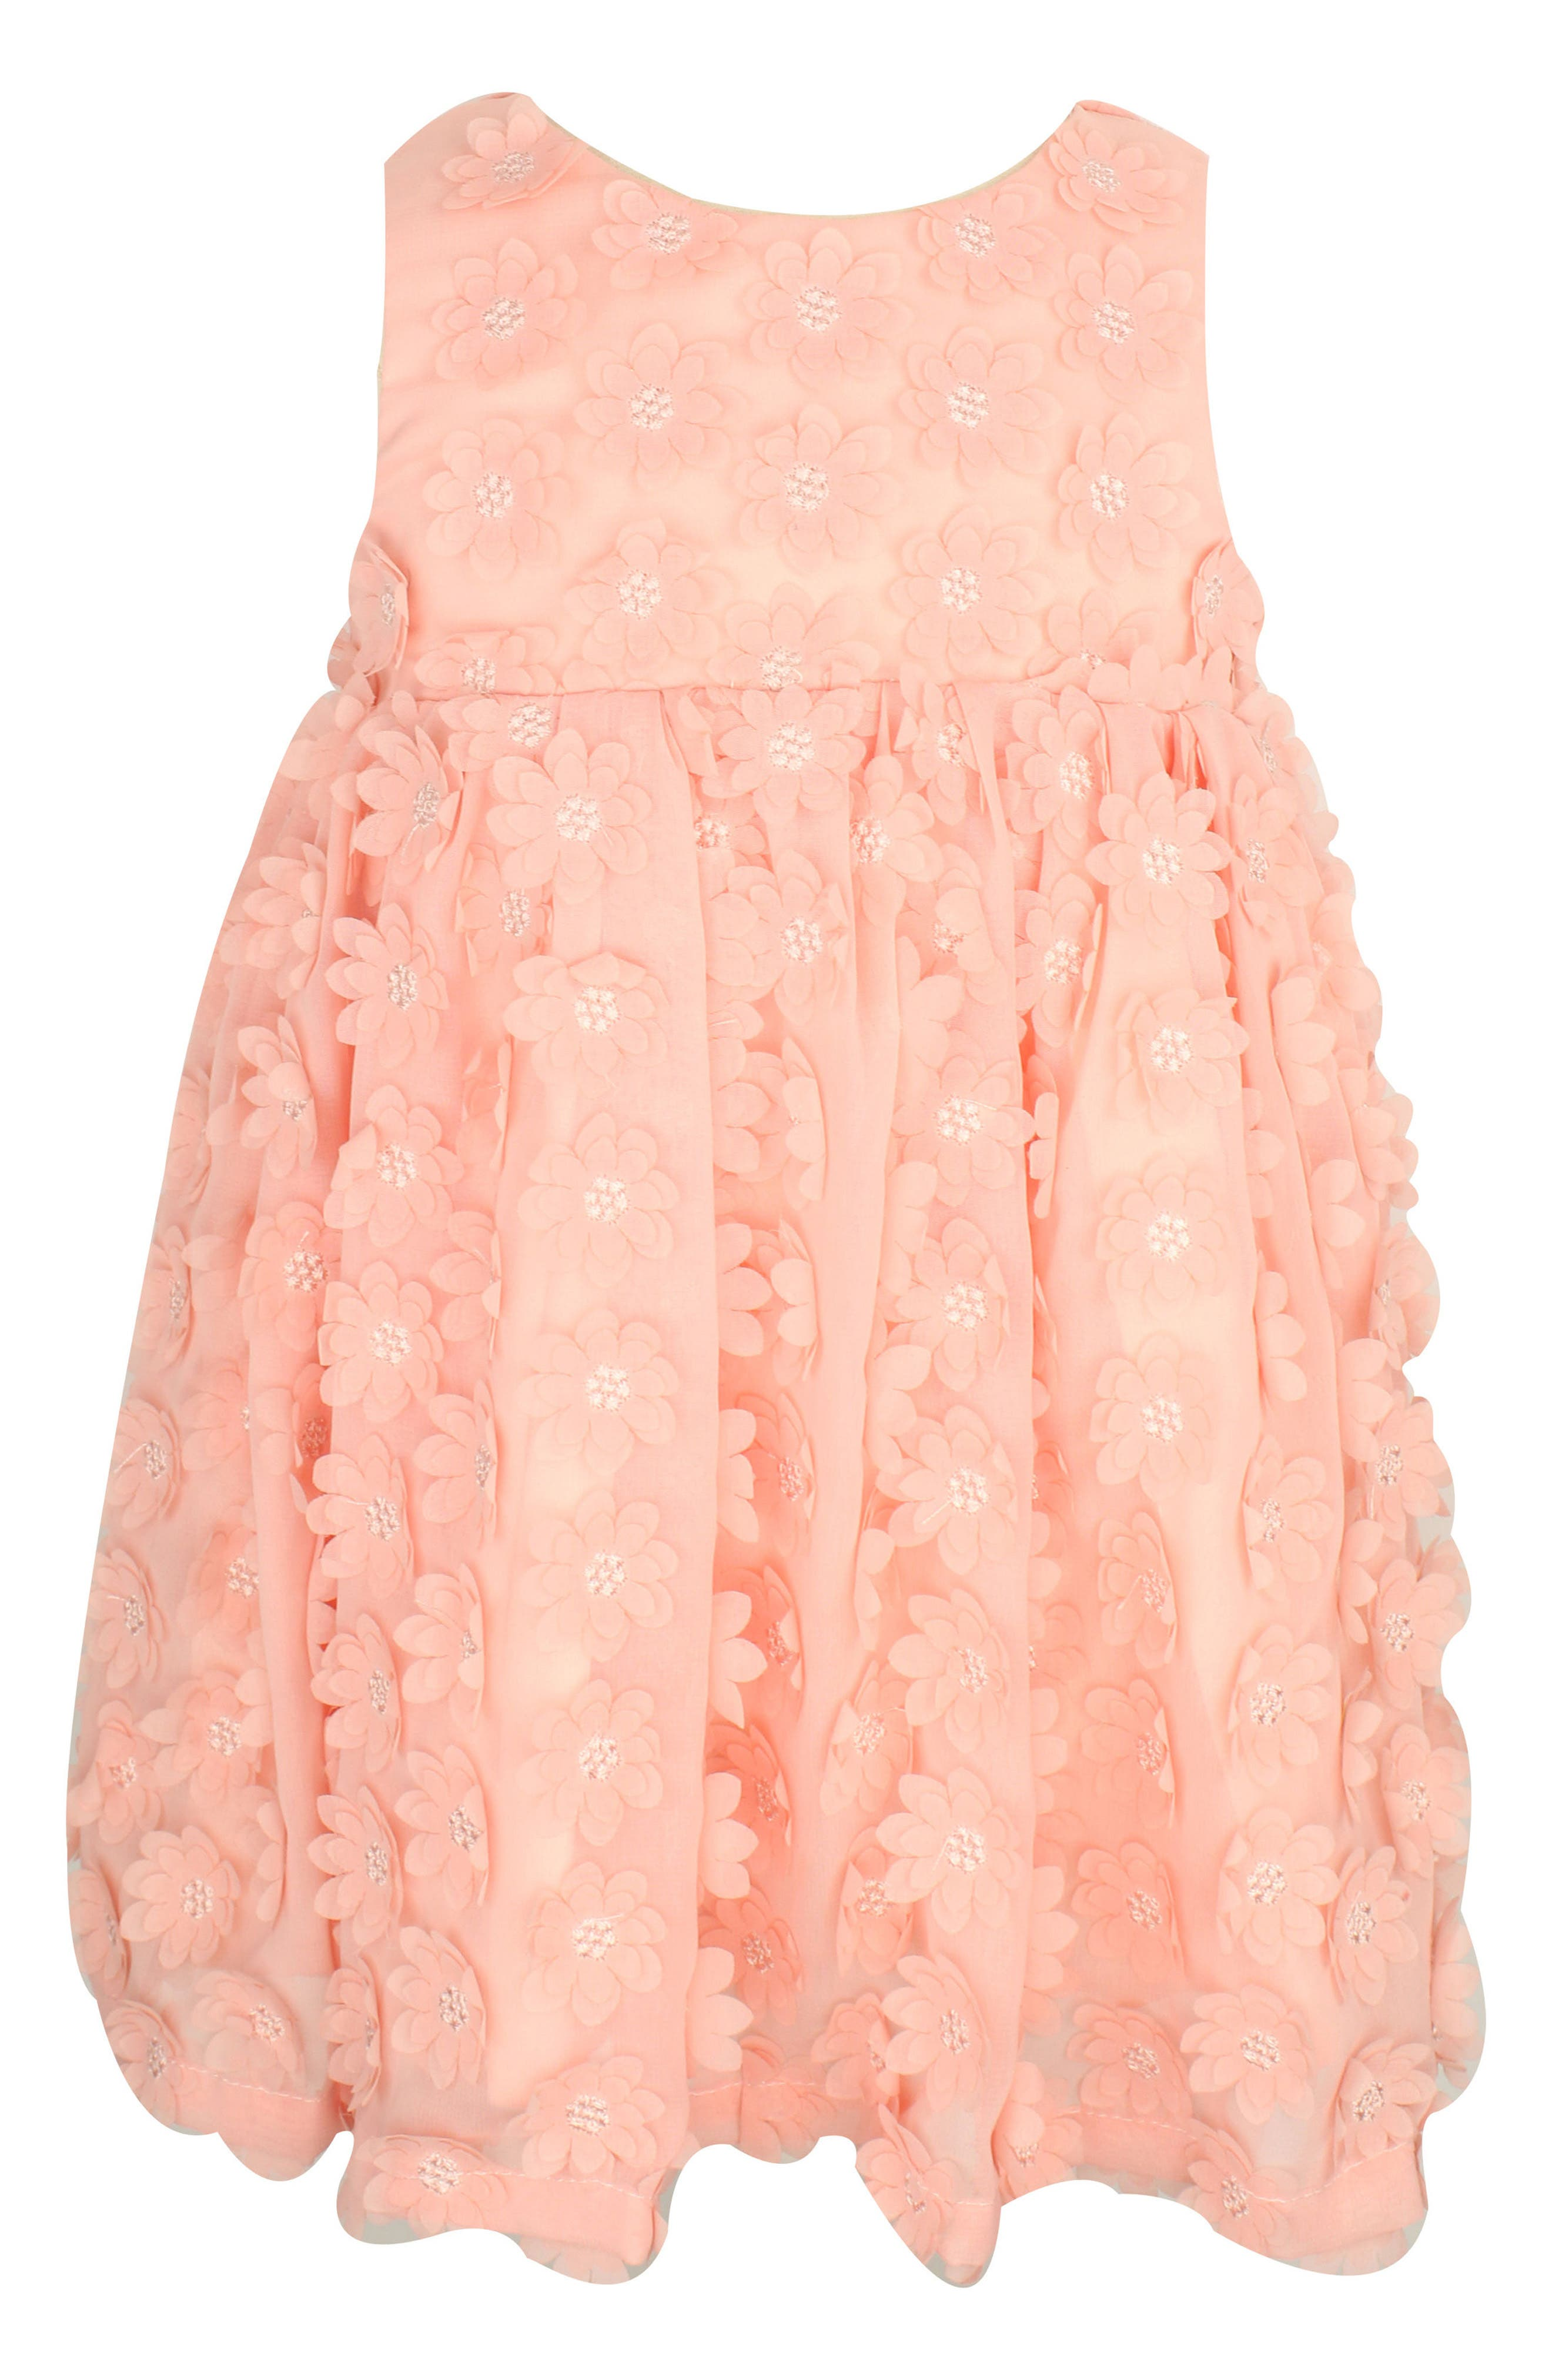 Flower Appliqué Dress,                         Main,                         color, PEACH